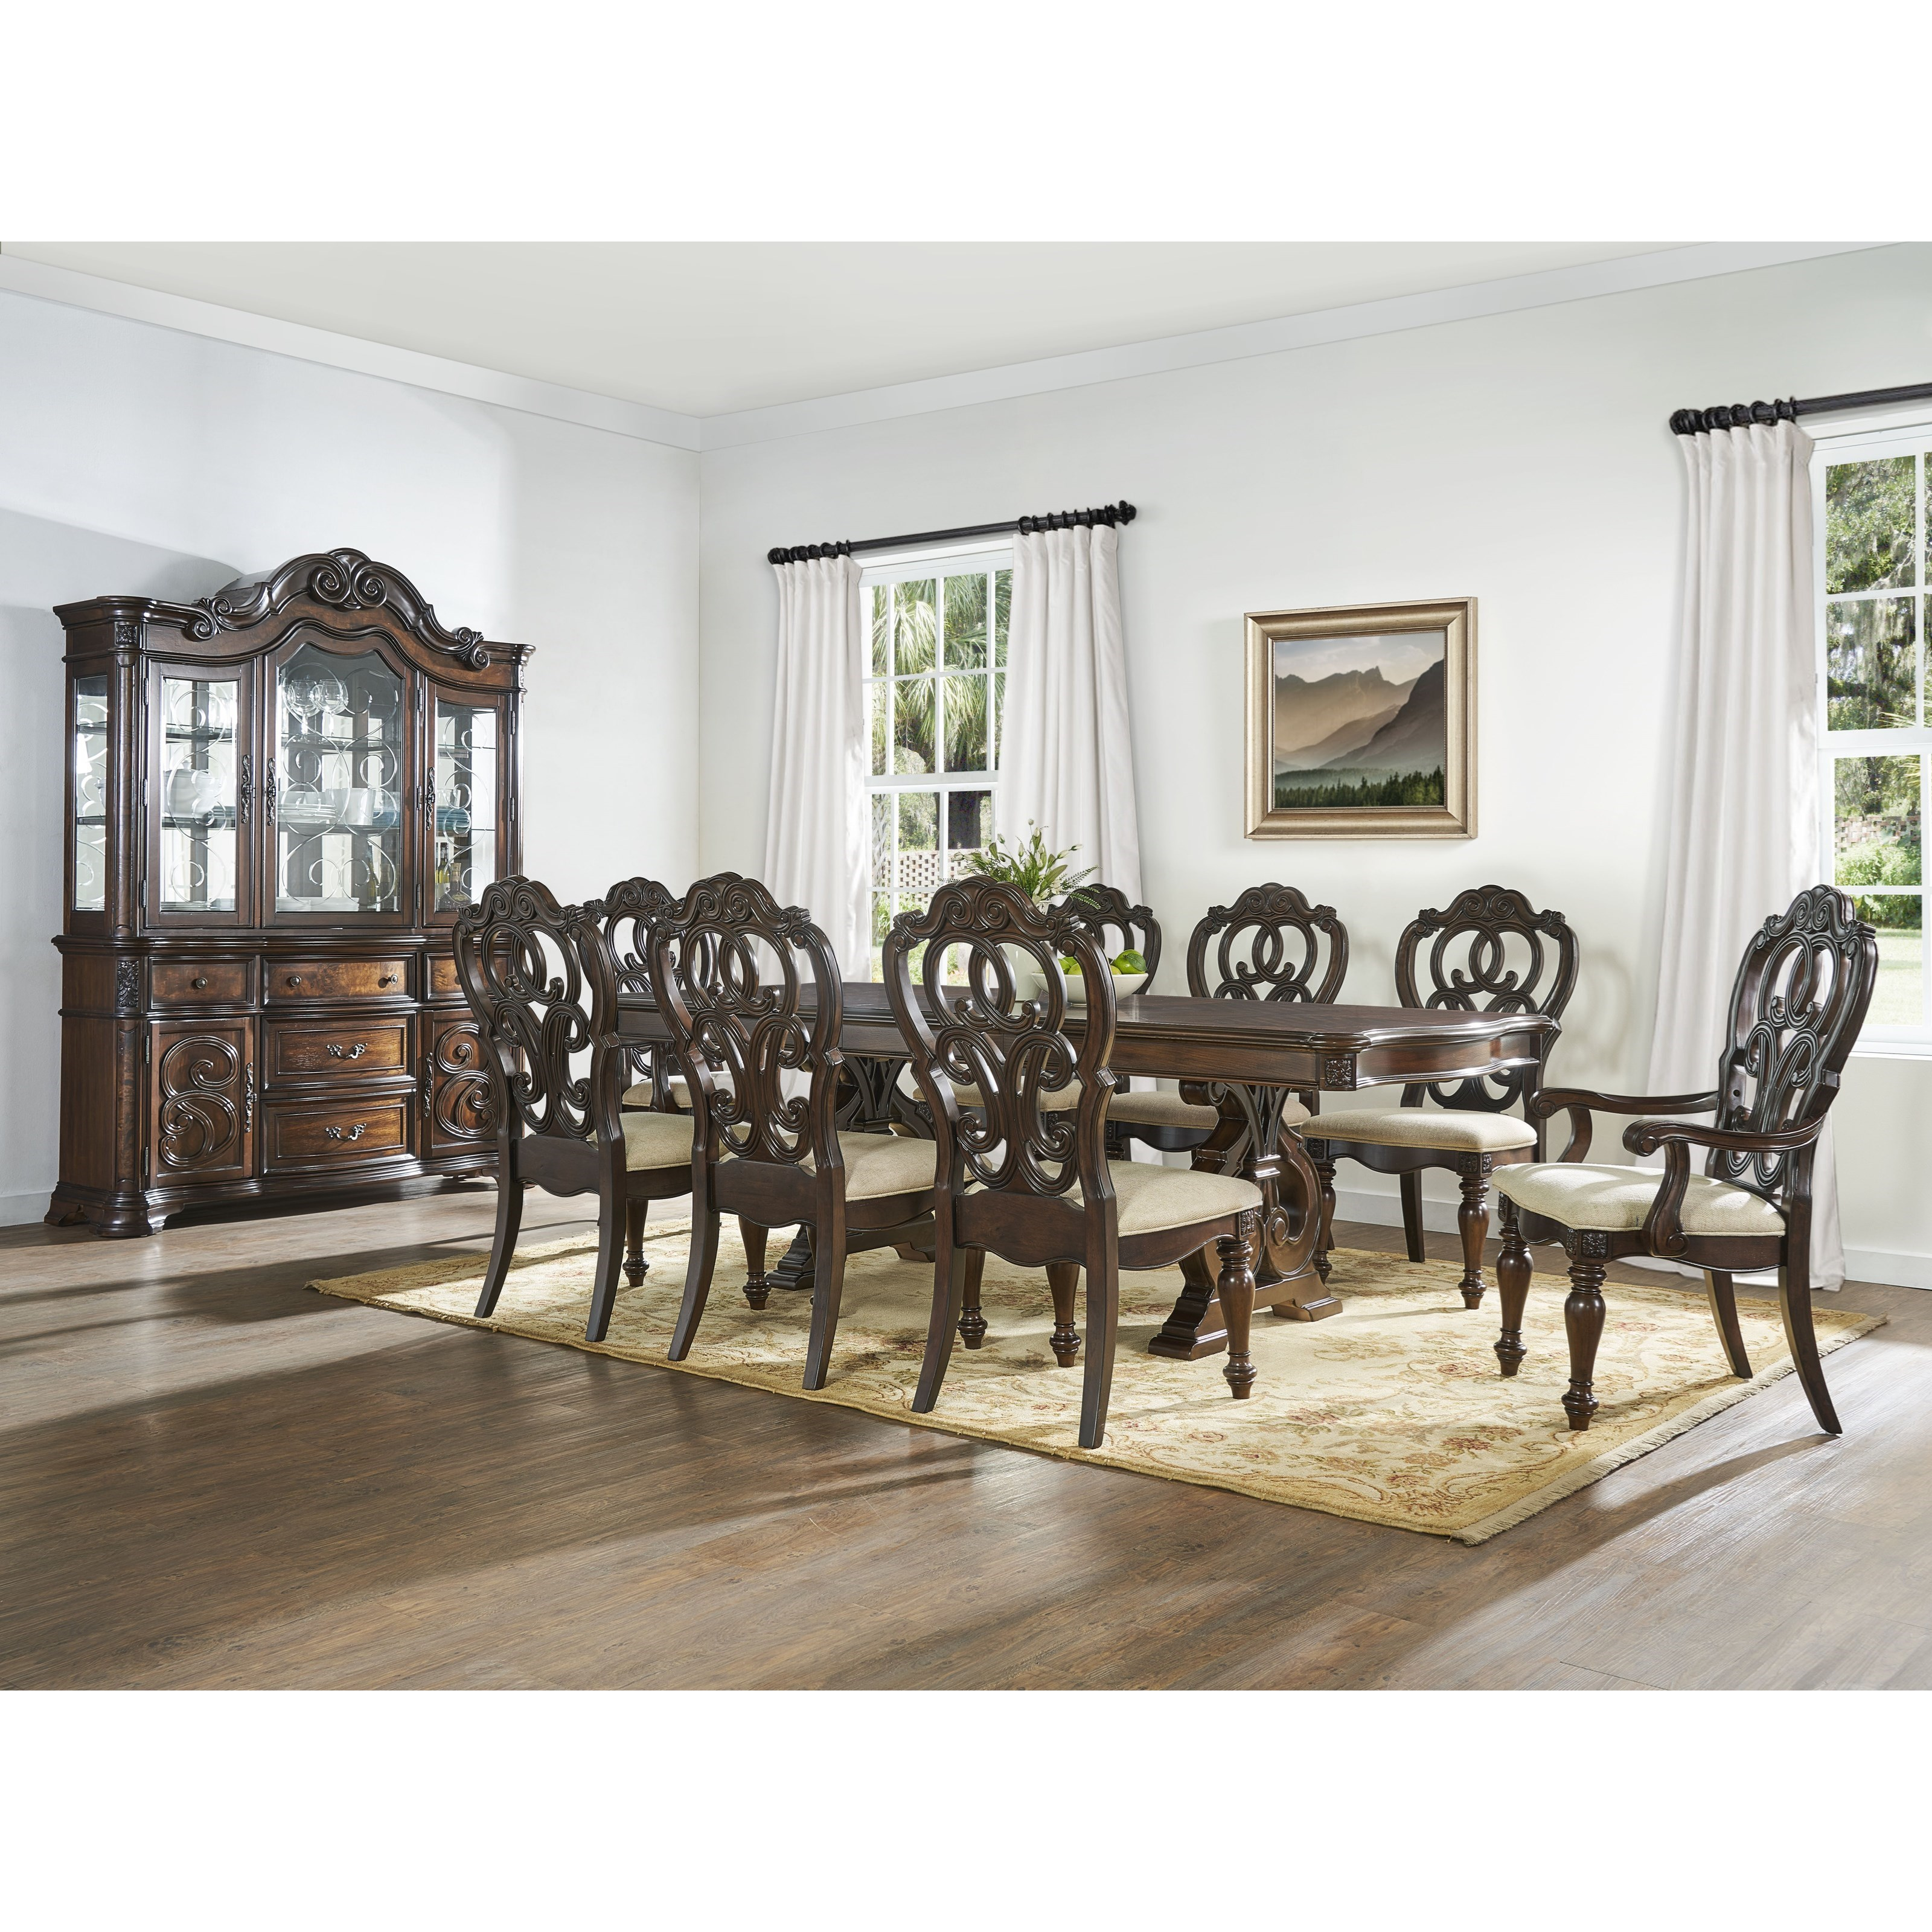 Royale Formal Dining Room Group by Steve Silver at Northeast Factory Direct